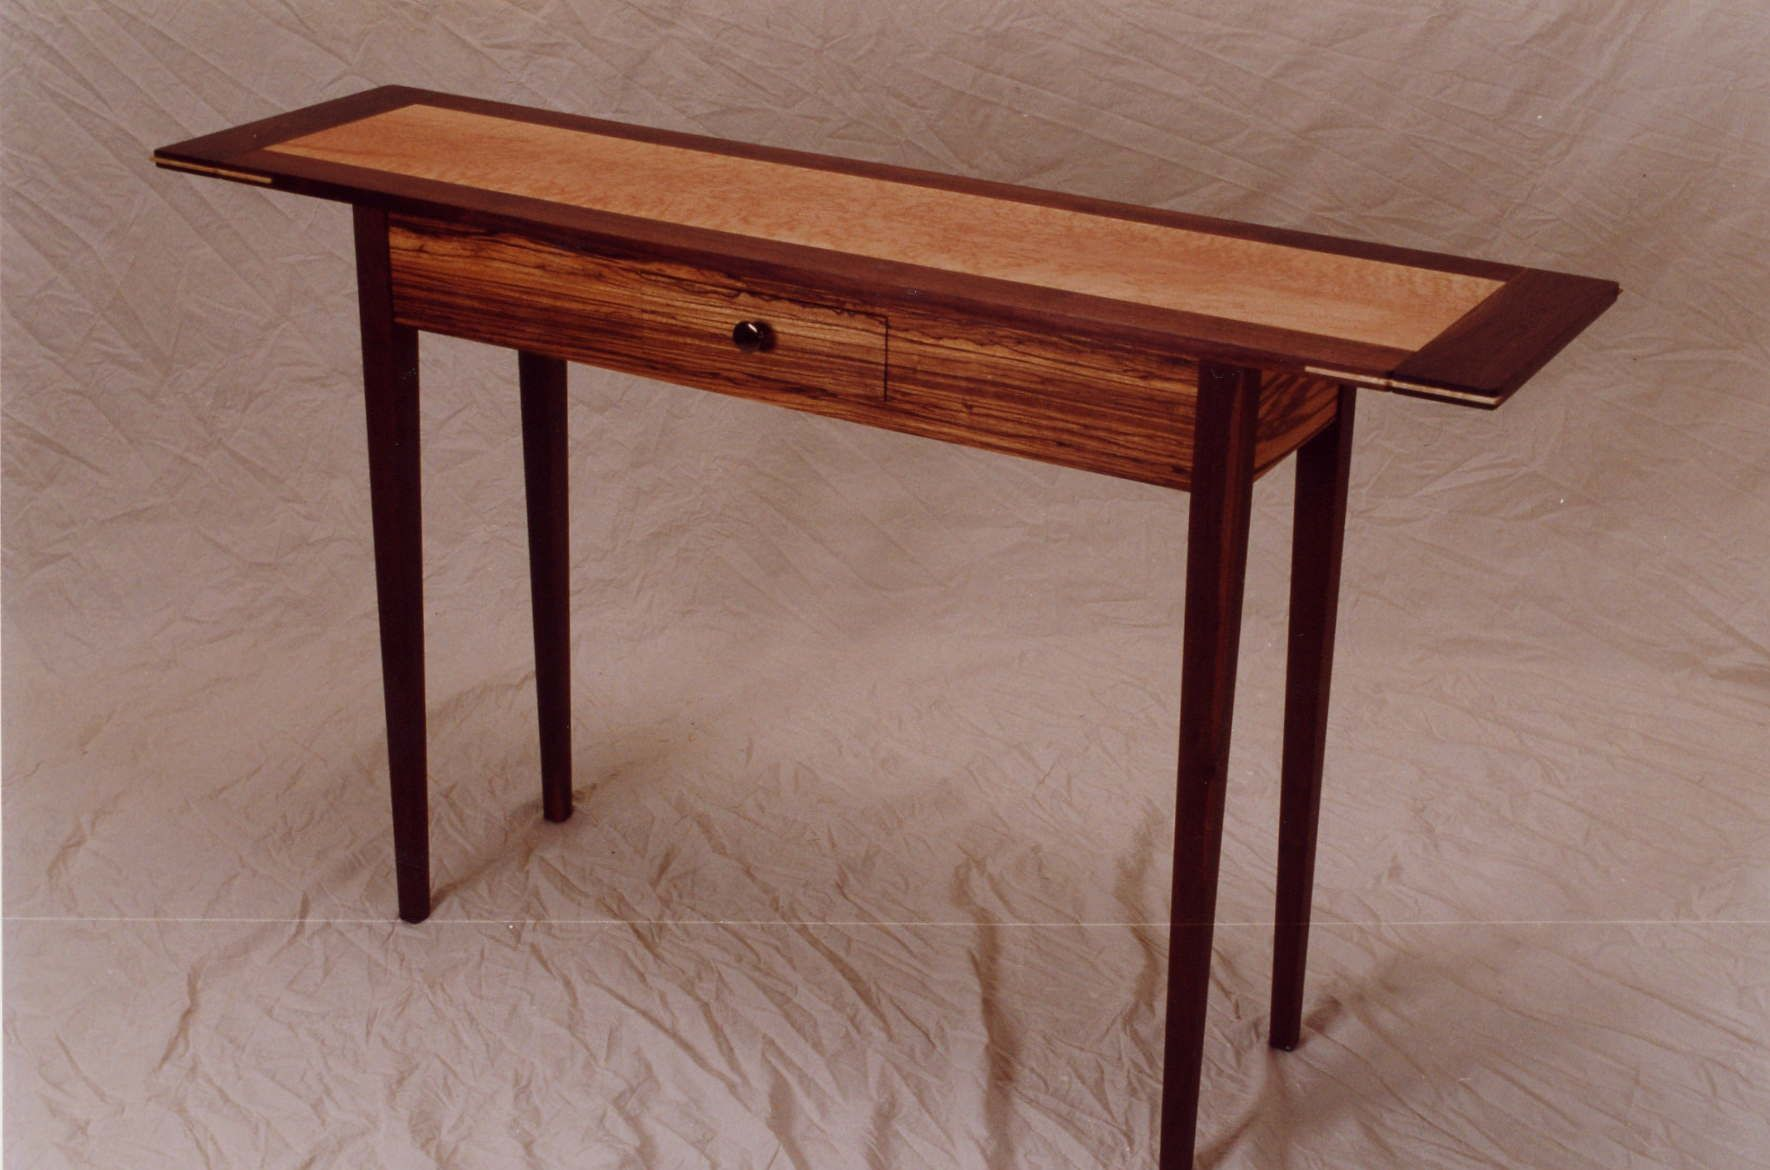 Tall Thin Accent Table